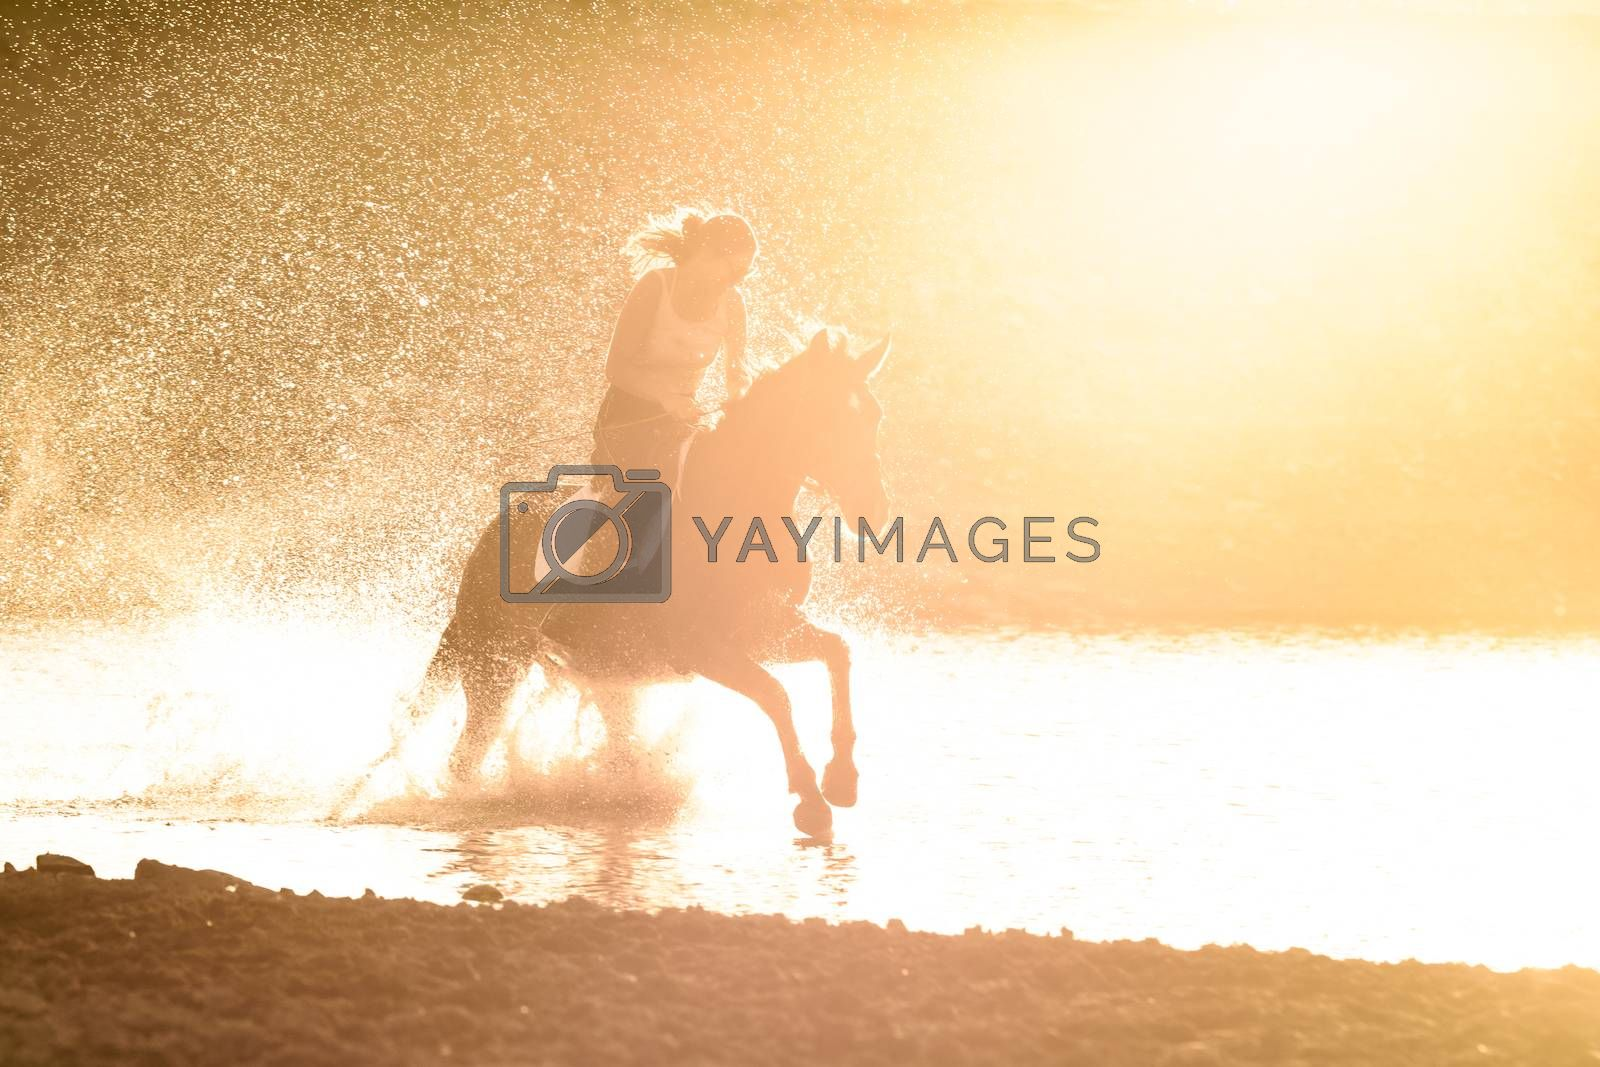 A girl rides a horse in the water along the river bank in the rays of sunset